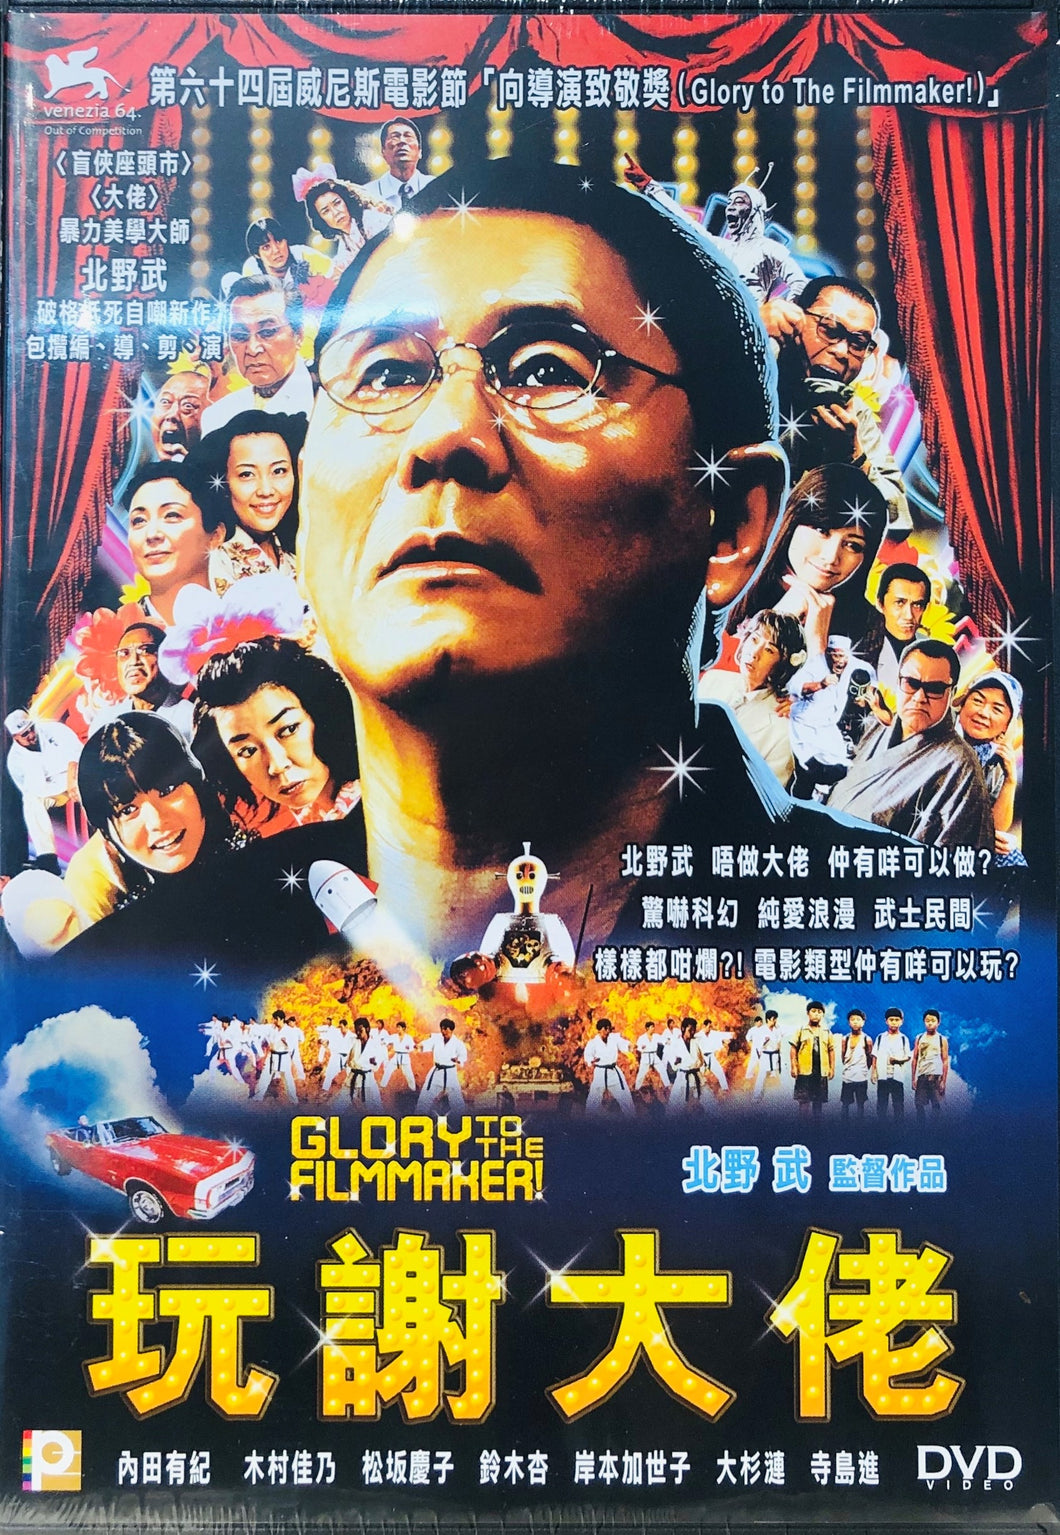 GLORY TO THE FILMMAKER 玩謝大佬 2009 (JAPANESE MOVIE) DVD ENGLISH SUBTITLES (REGION 3)